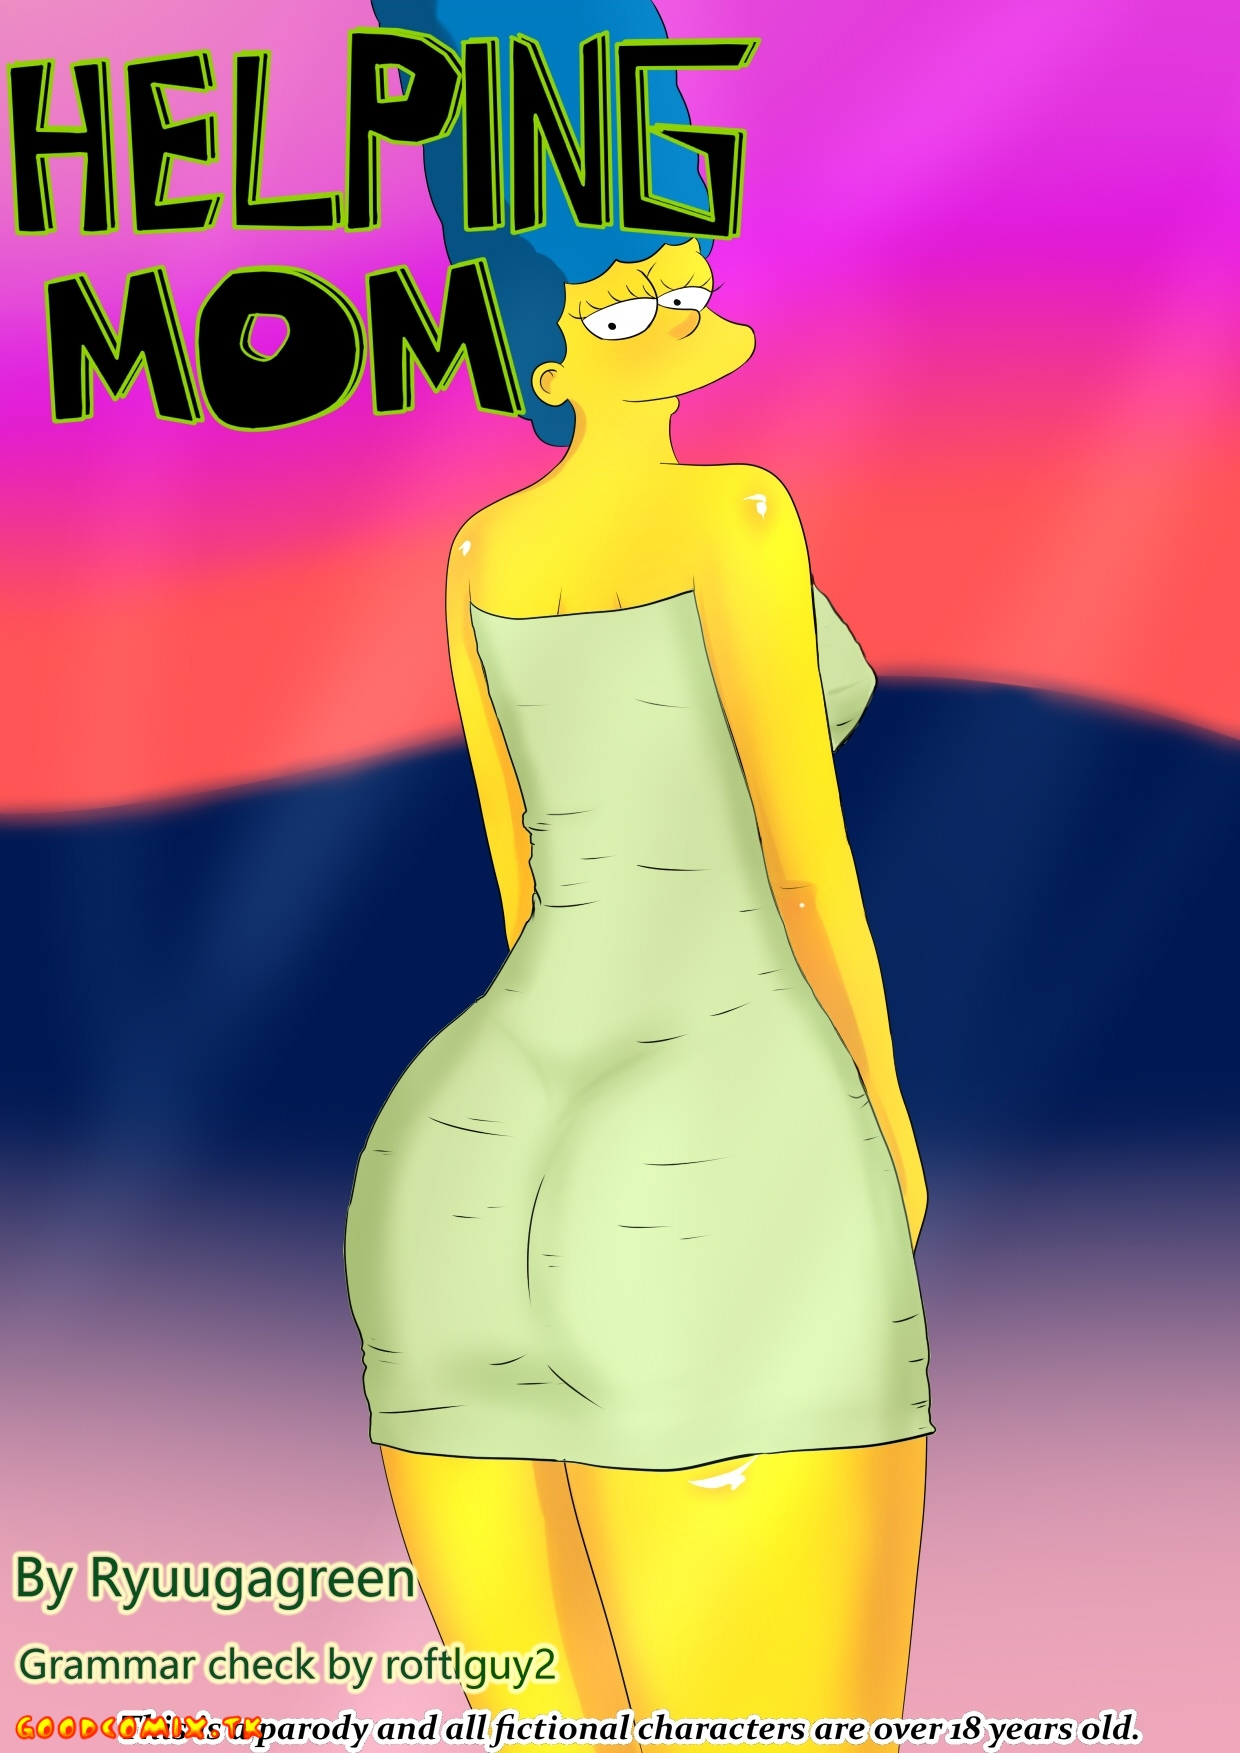 Goodcomix The Simpsons - [Ryuugagreen] - Helping Mom